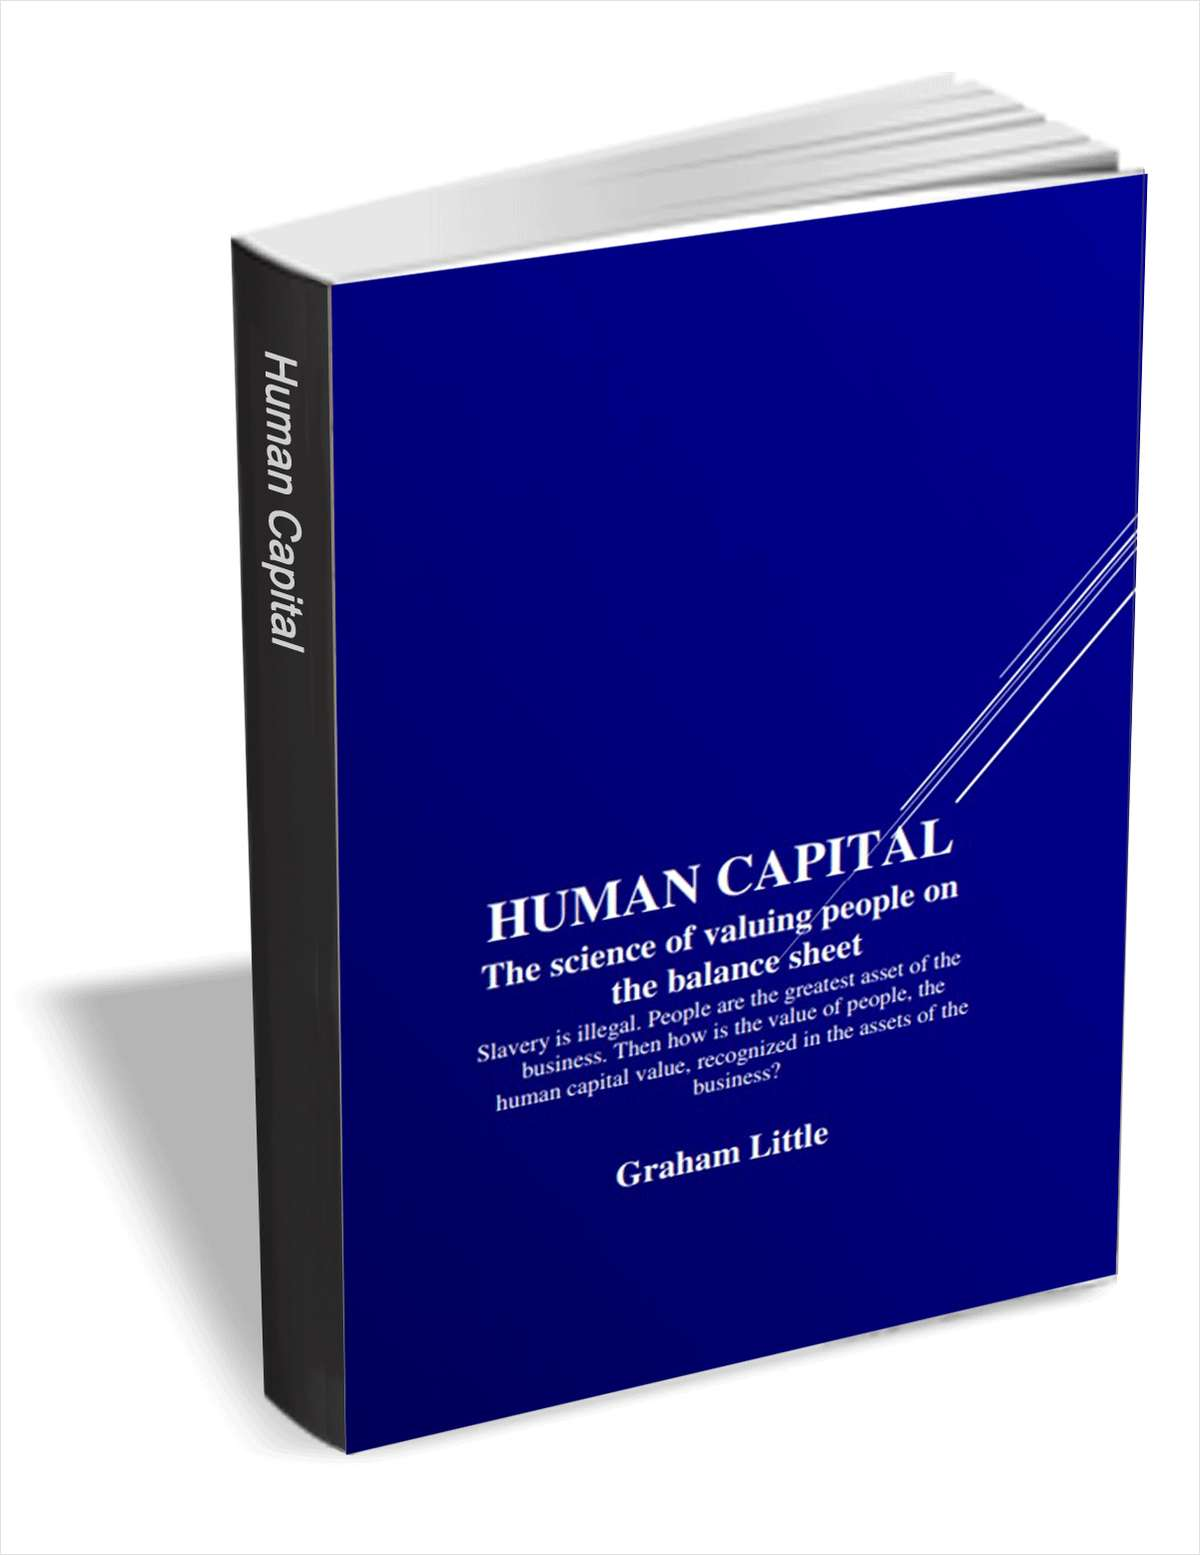 Human Capital - The Science of Valuing People on the Balance Sheet